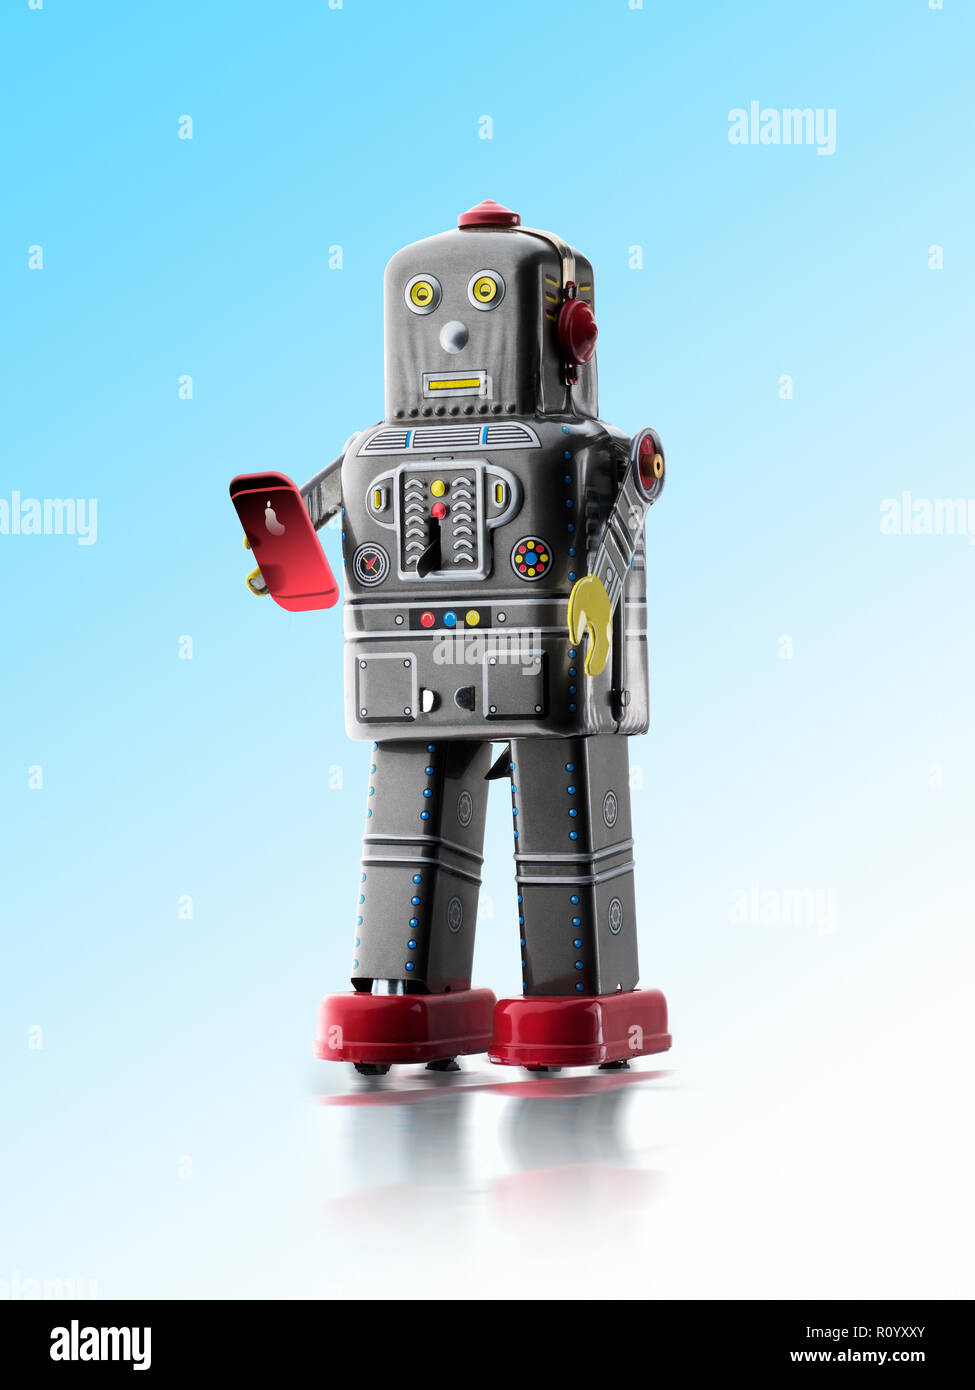 Robot Toy Stock Photos & Robot Toy Stock Images - Alamy